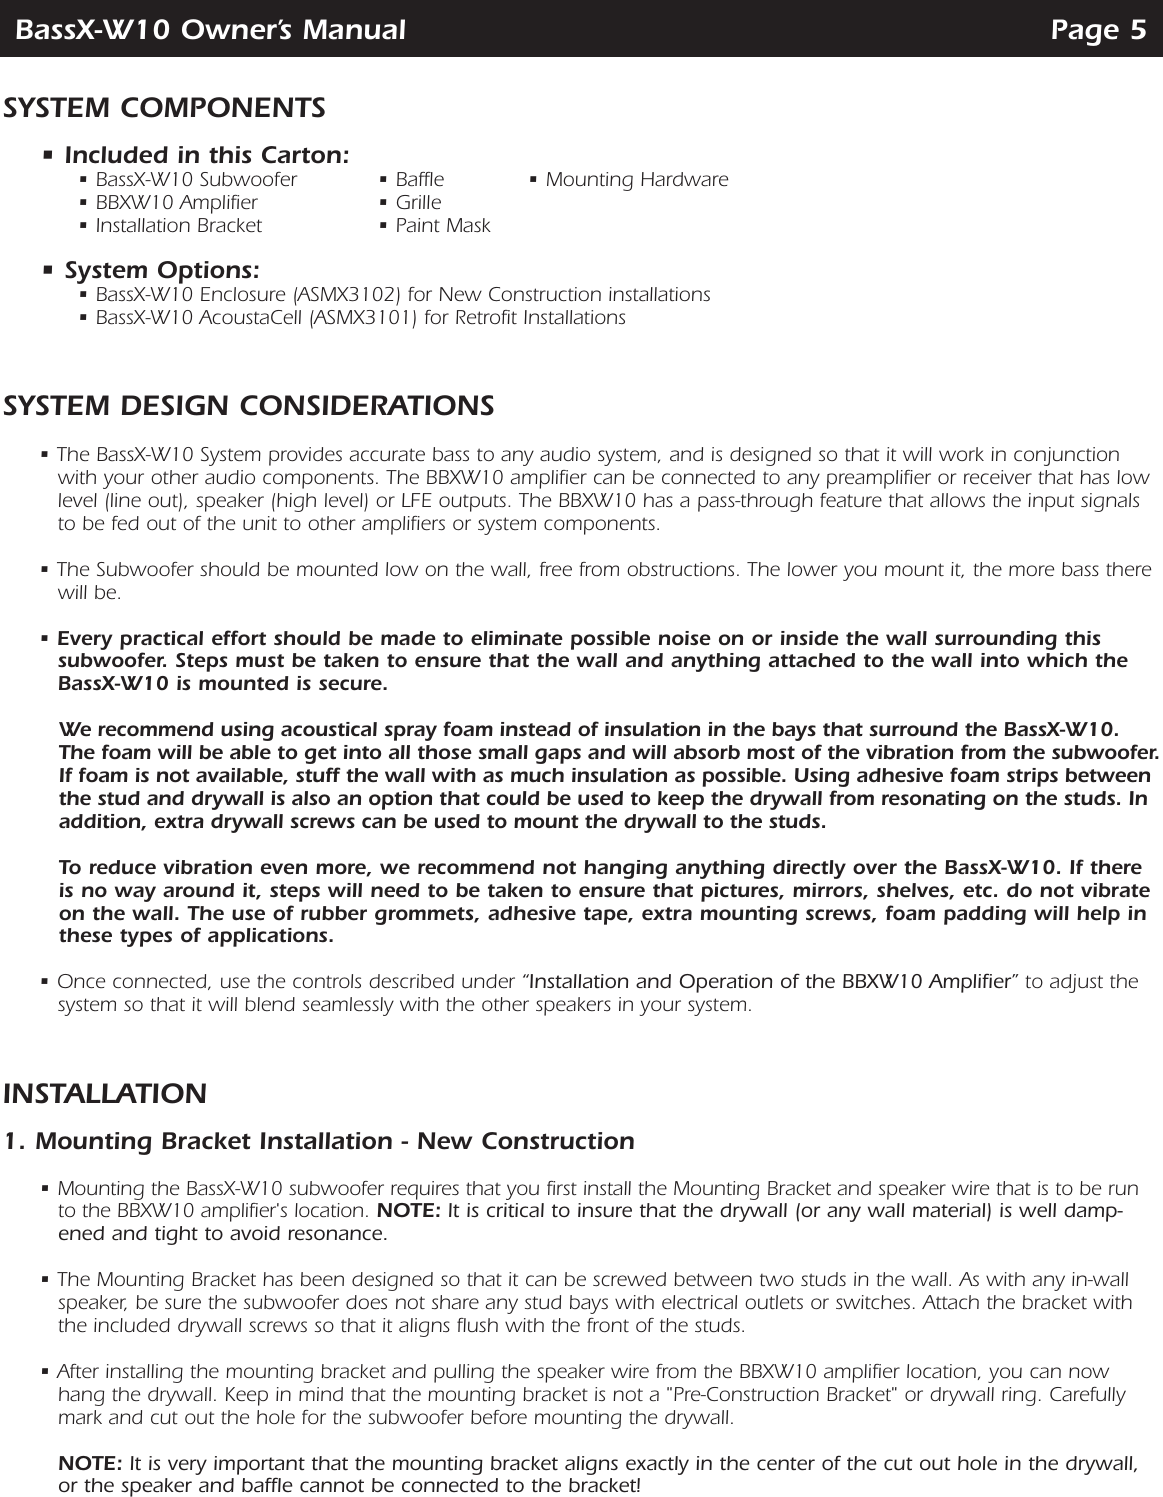 Speakercraft Powered In Wall Subwoofer Bassx W10 Users Manual Wiring Diagram Page 5 Of 12